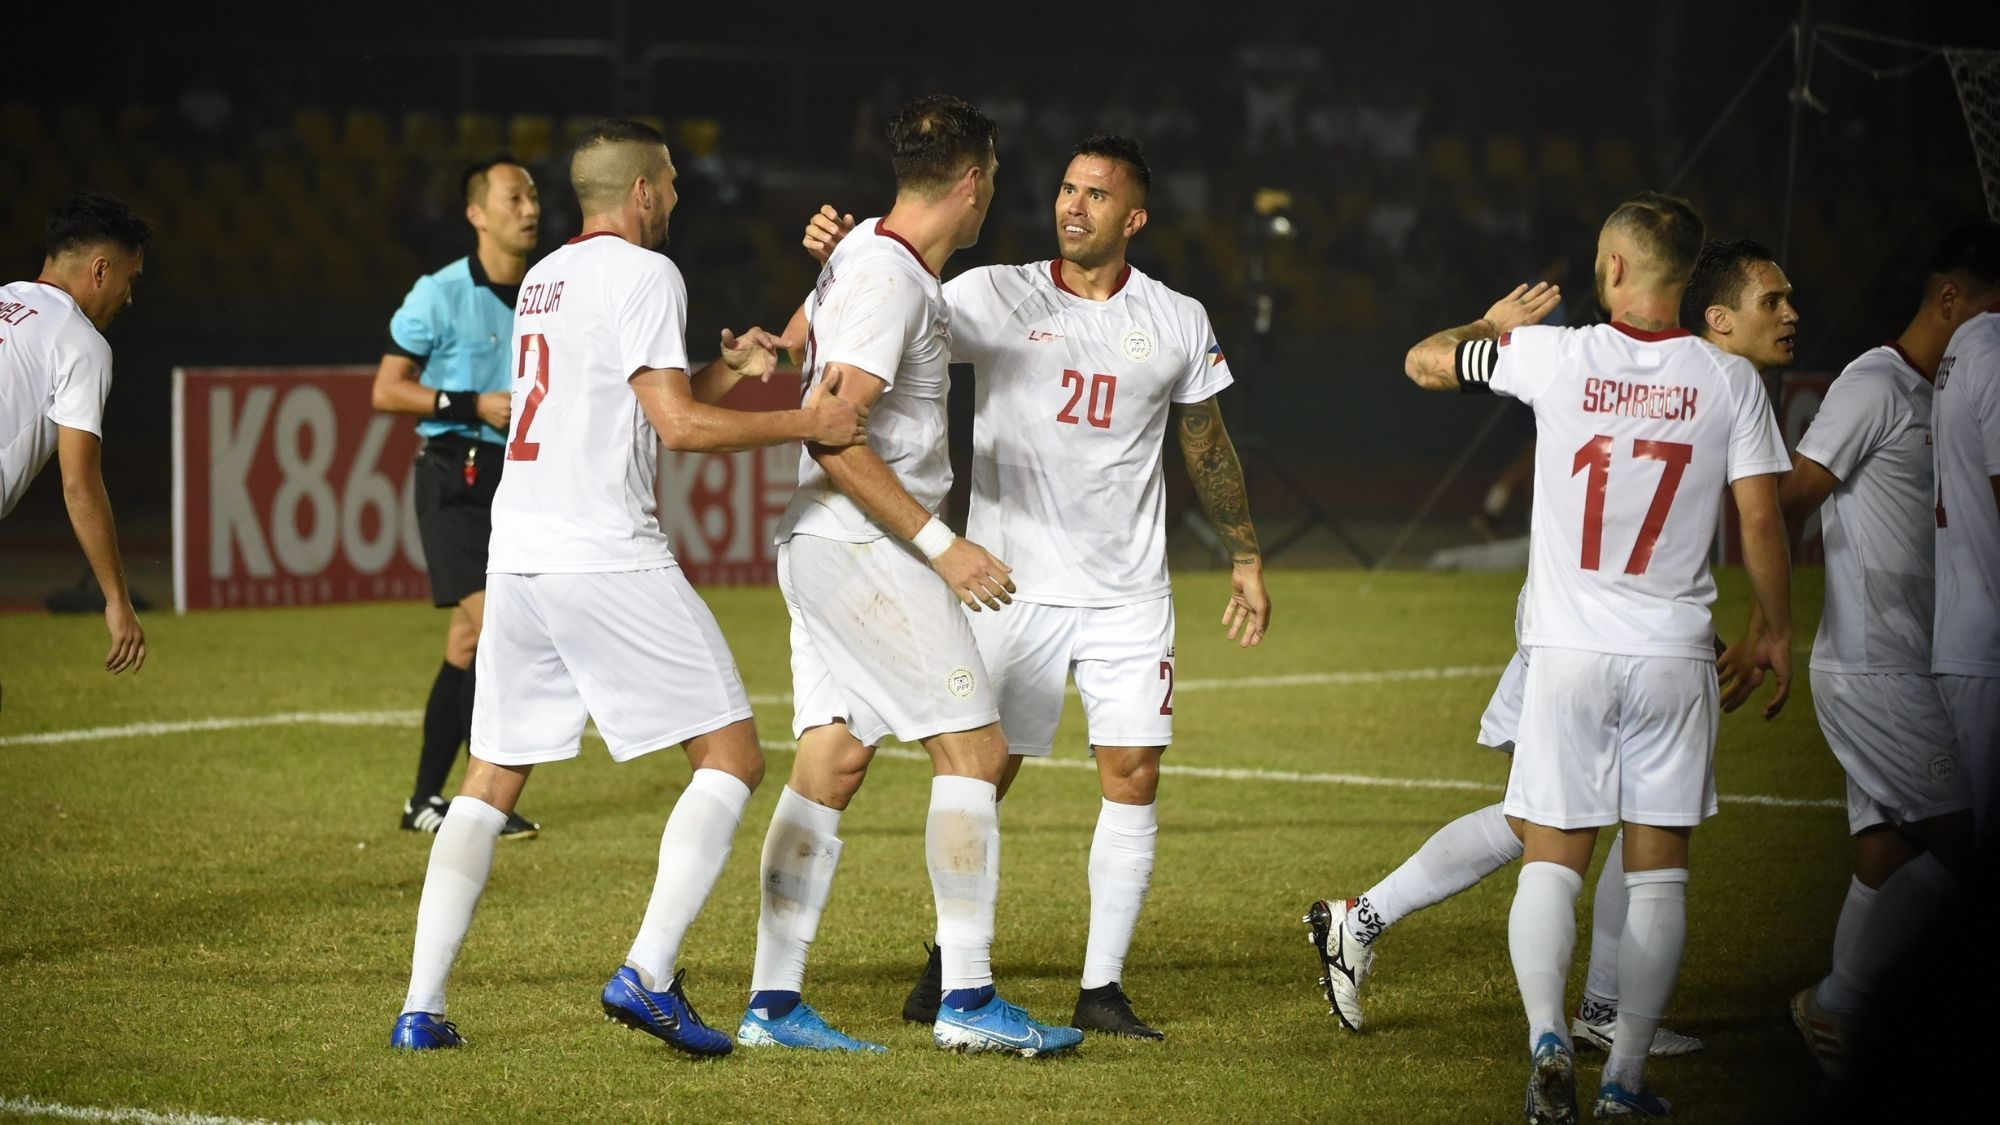 Azkals to train in Doha for World Cup and Asia Cup Qualifiers